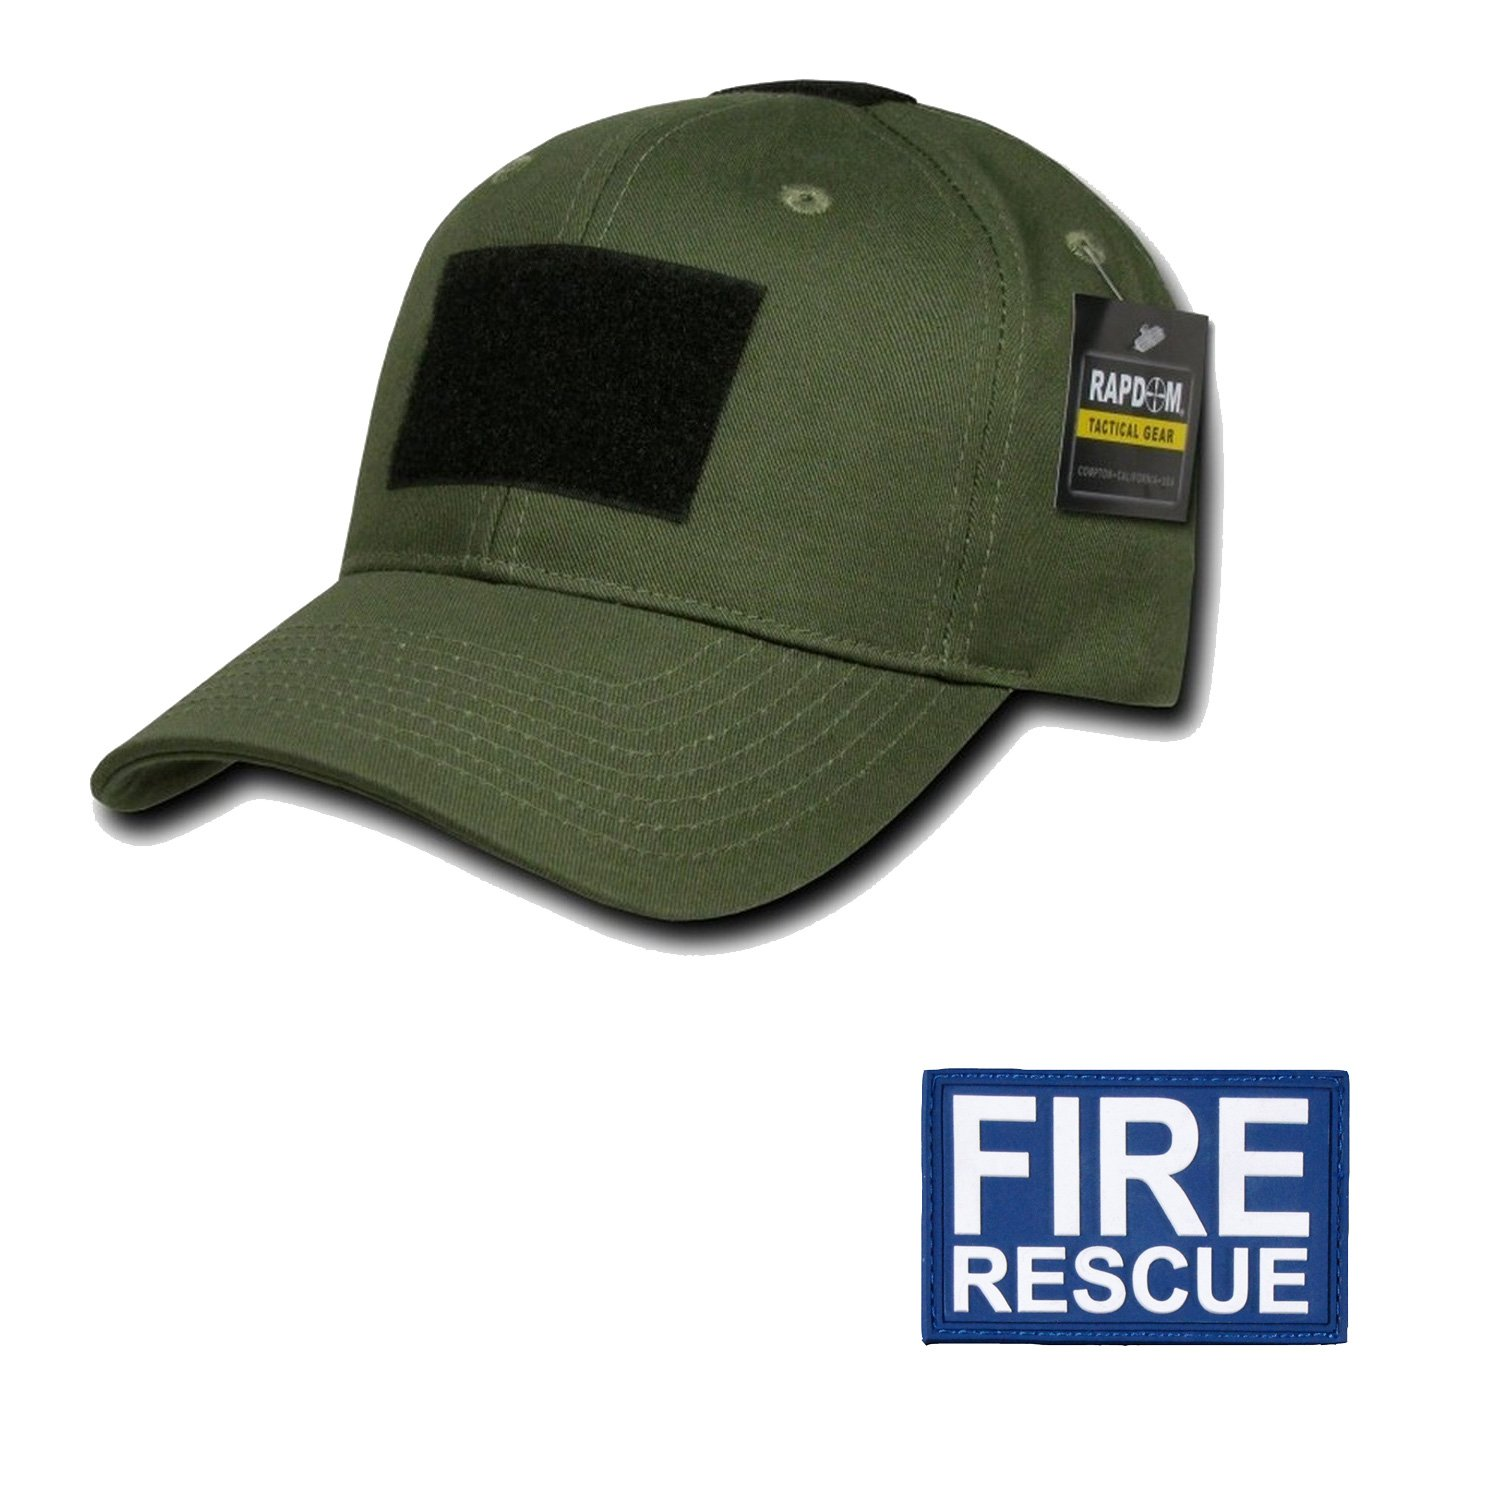 RAPDOM Genuine Tactical Constructed Ball Operator Cap Olive Caps with Free Patch (Olive, Fire Rescue Patch) by RAPDOM